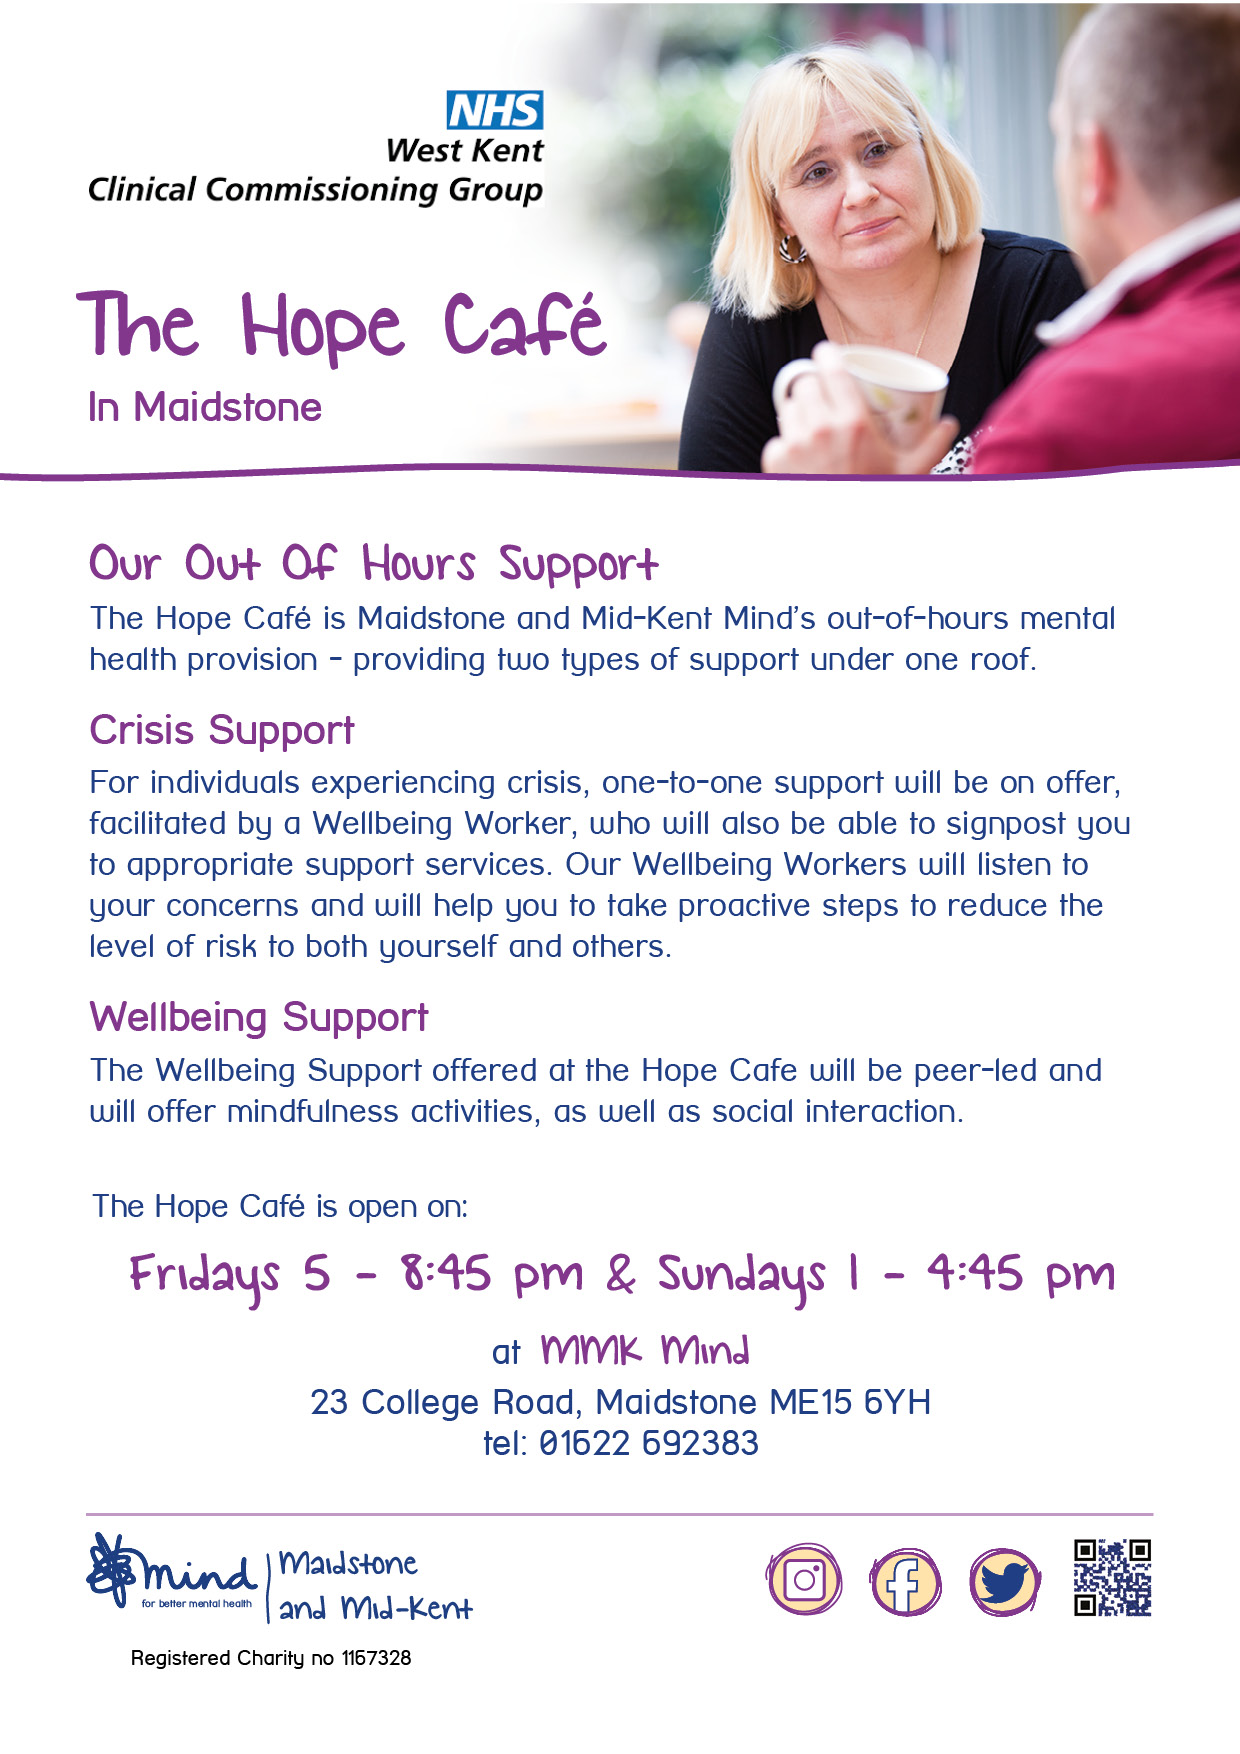 Hope Café - Our Out Of Hours Support The Hope Café is Maidstone and Mid-Kent Mind's out-of-hours mental health provision - providing two types of support under one roof. Crisis Support For individuals experiencing crisis, one-to-one support will be on offer, facilitated by a Wellbeing Worker, who will also be able to signpost you to appropriate support services. Our Wellbeing Workers will listen to your concerns and will help you to take proactive steps to reduce the level of risk to both yourself and others. Wellbeing Support The Wellbeing Support offered at the Hope Cafe will be peer-led and will offer mindfulness activities, as well as social interaction. The Hope Café is open on: Fridays 5 - 8:45 pm & Sundays 1 - 4:45 pm. at MMK Mind 23 College Road, Maidstone ME15 6YH tel: 01622 692383